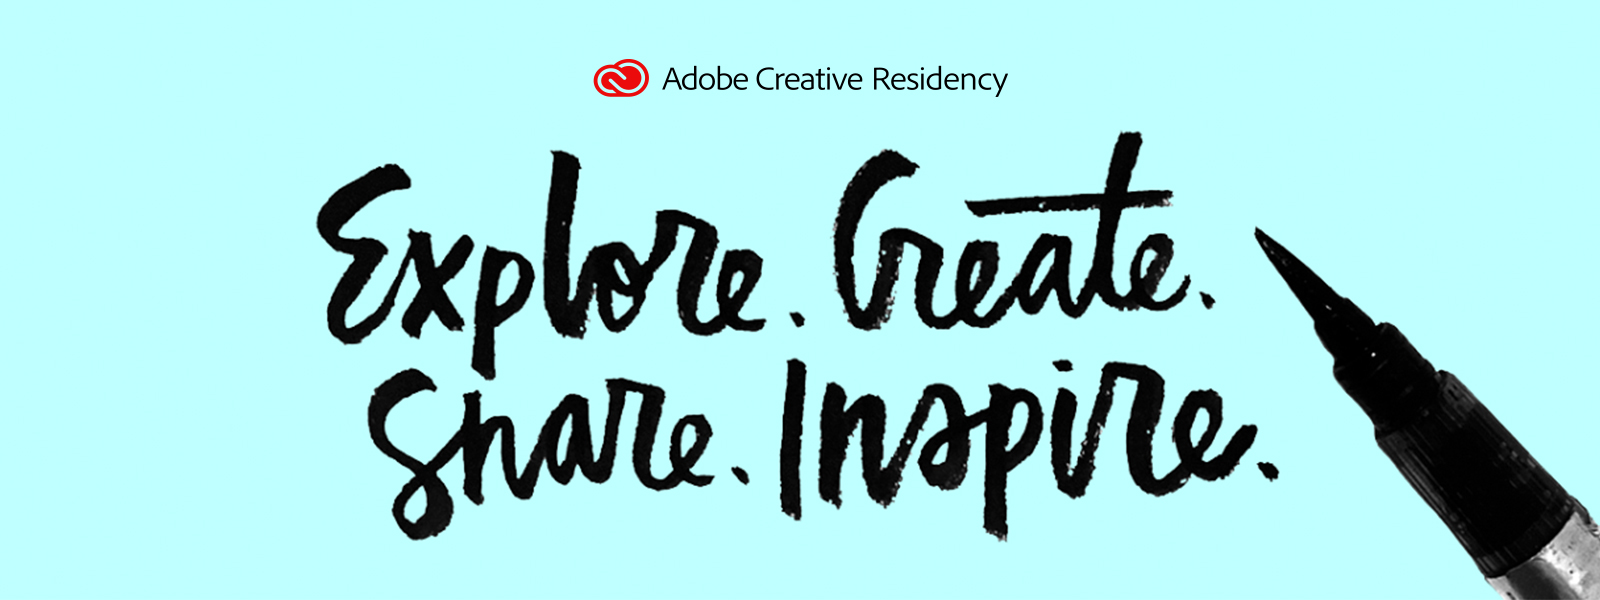 Add: Adobe Creative Residency